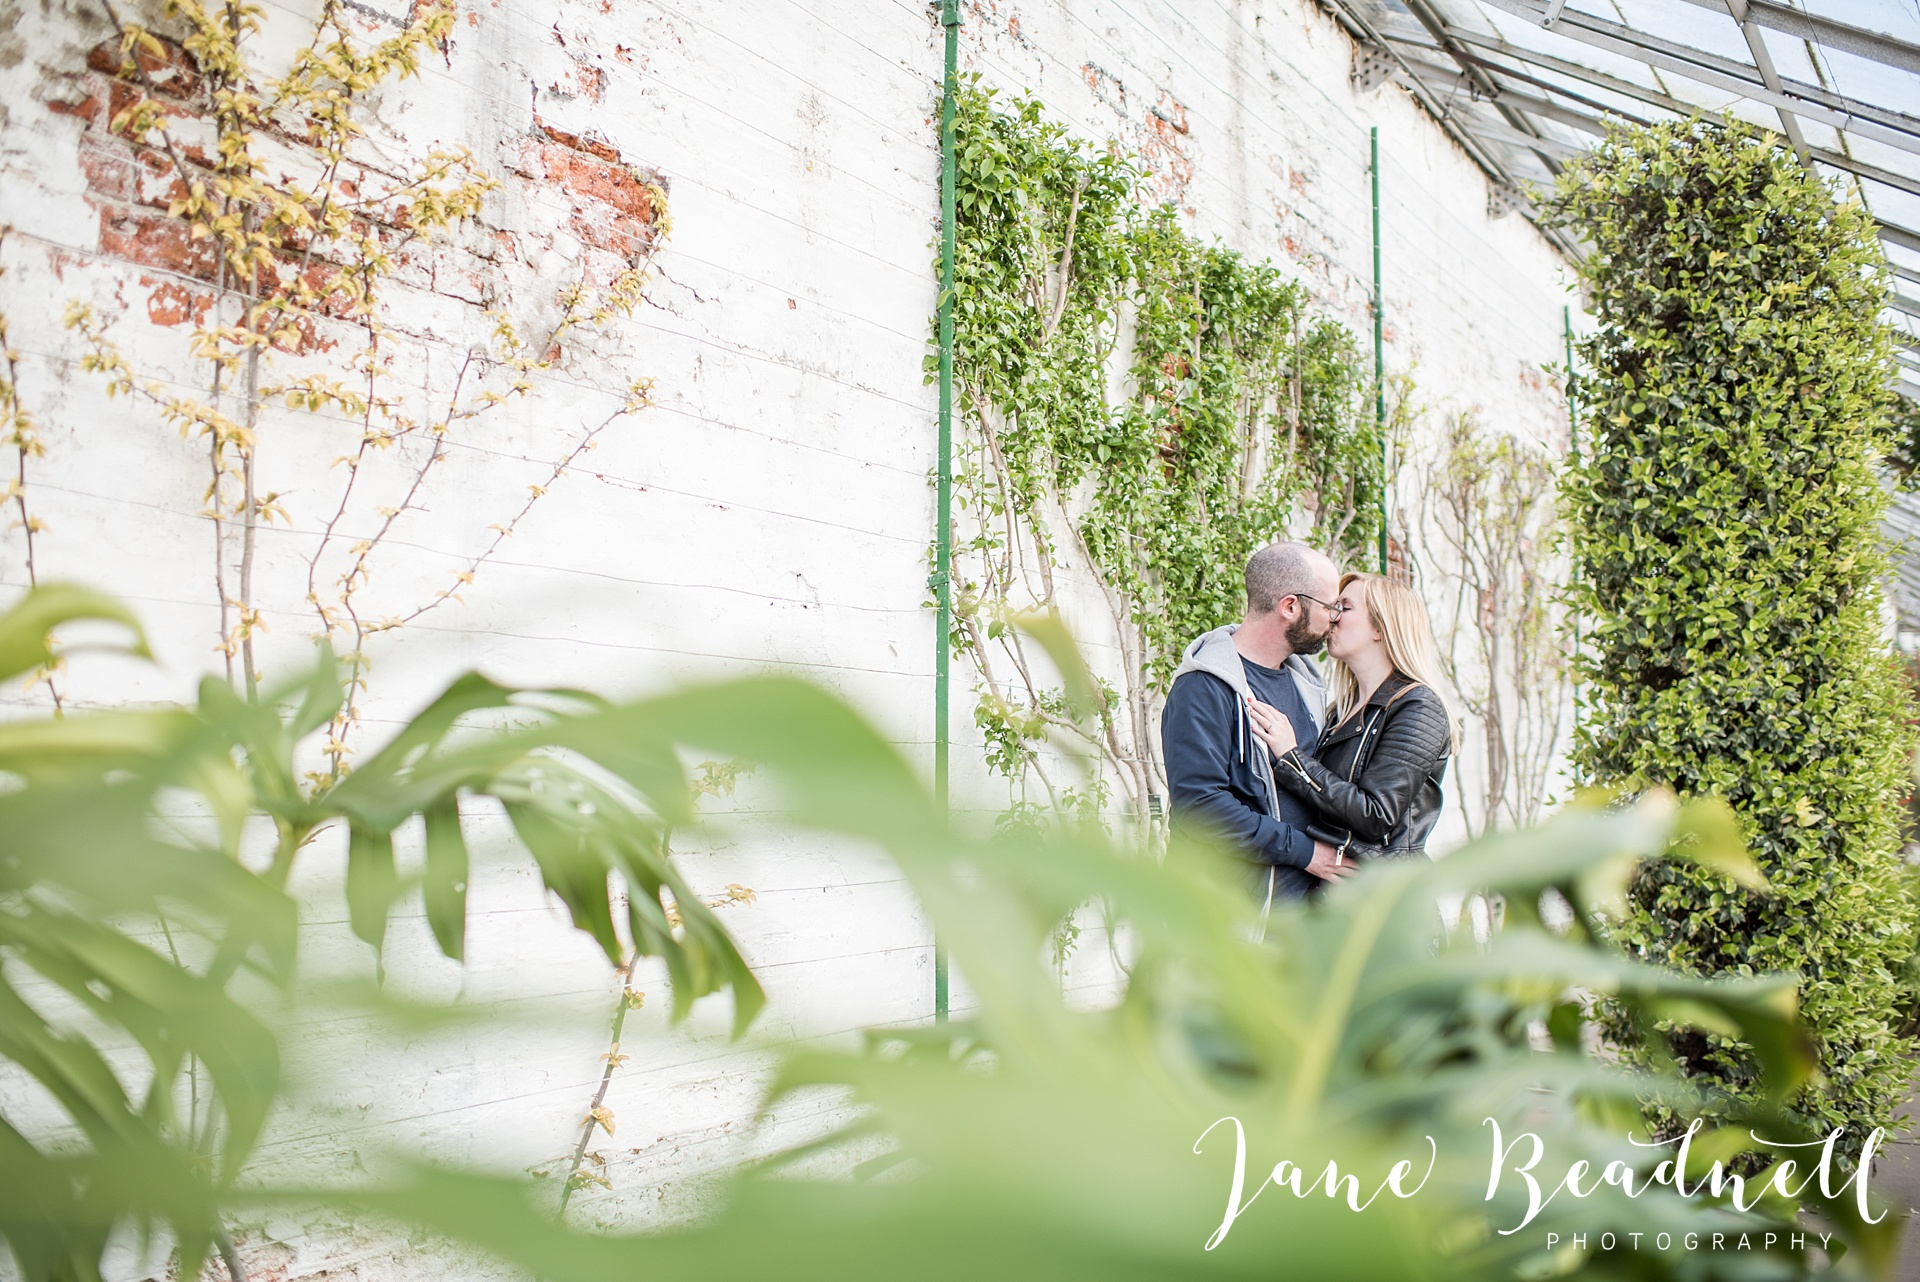 Temple Newsam engagement photography by Jane Beadnell Wedding Photography_0022